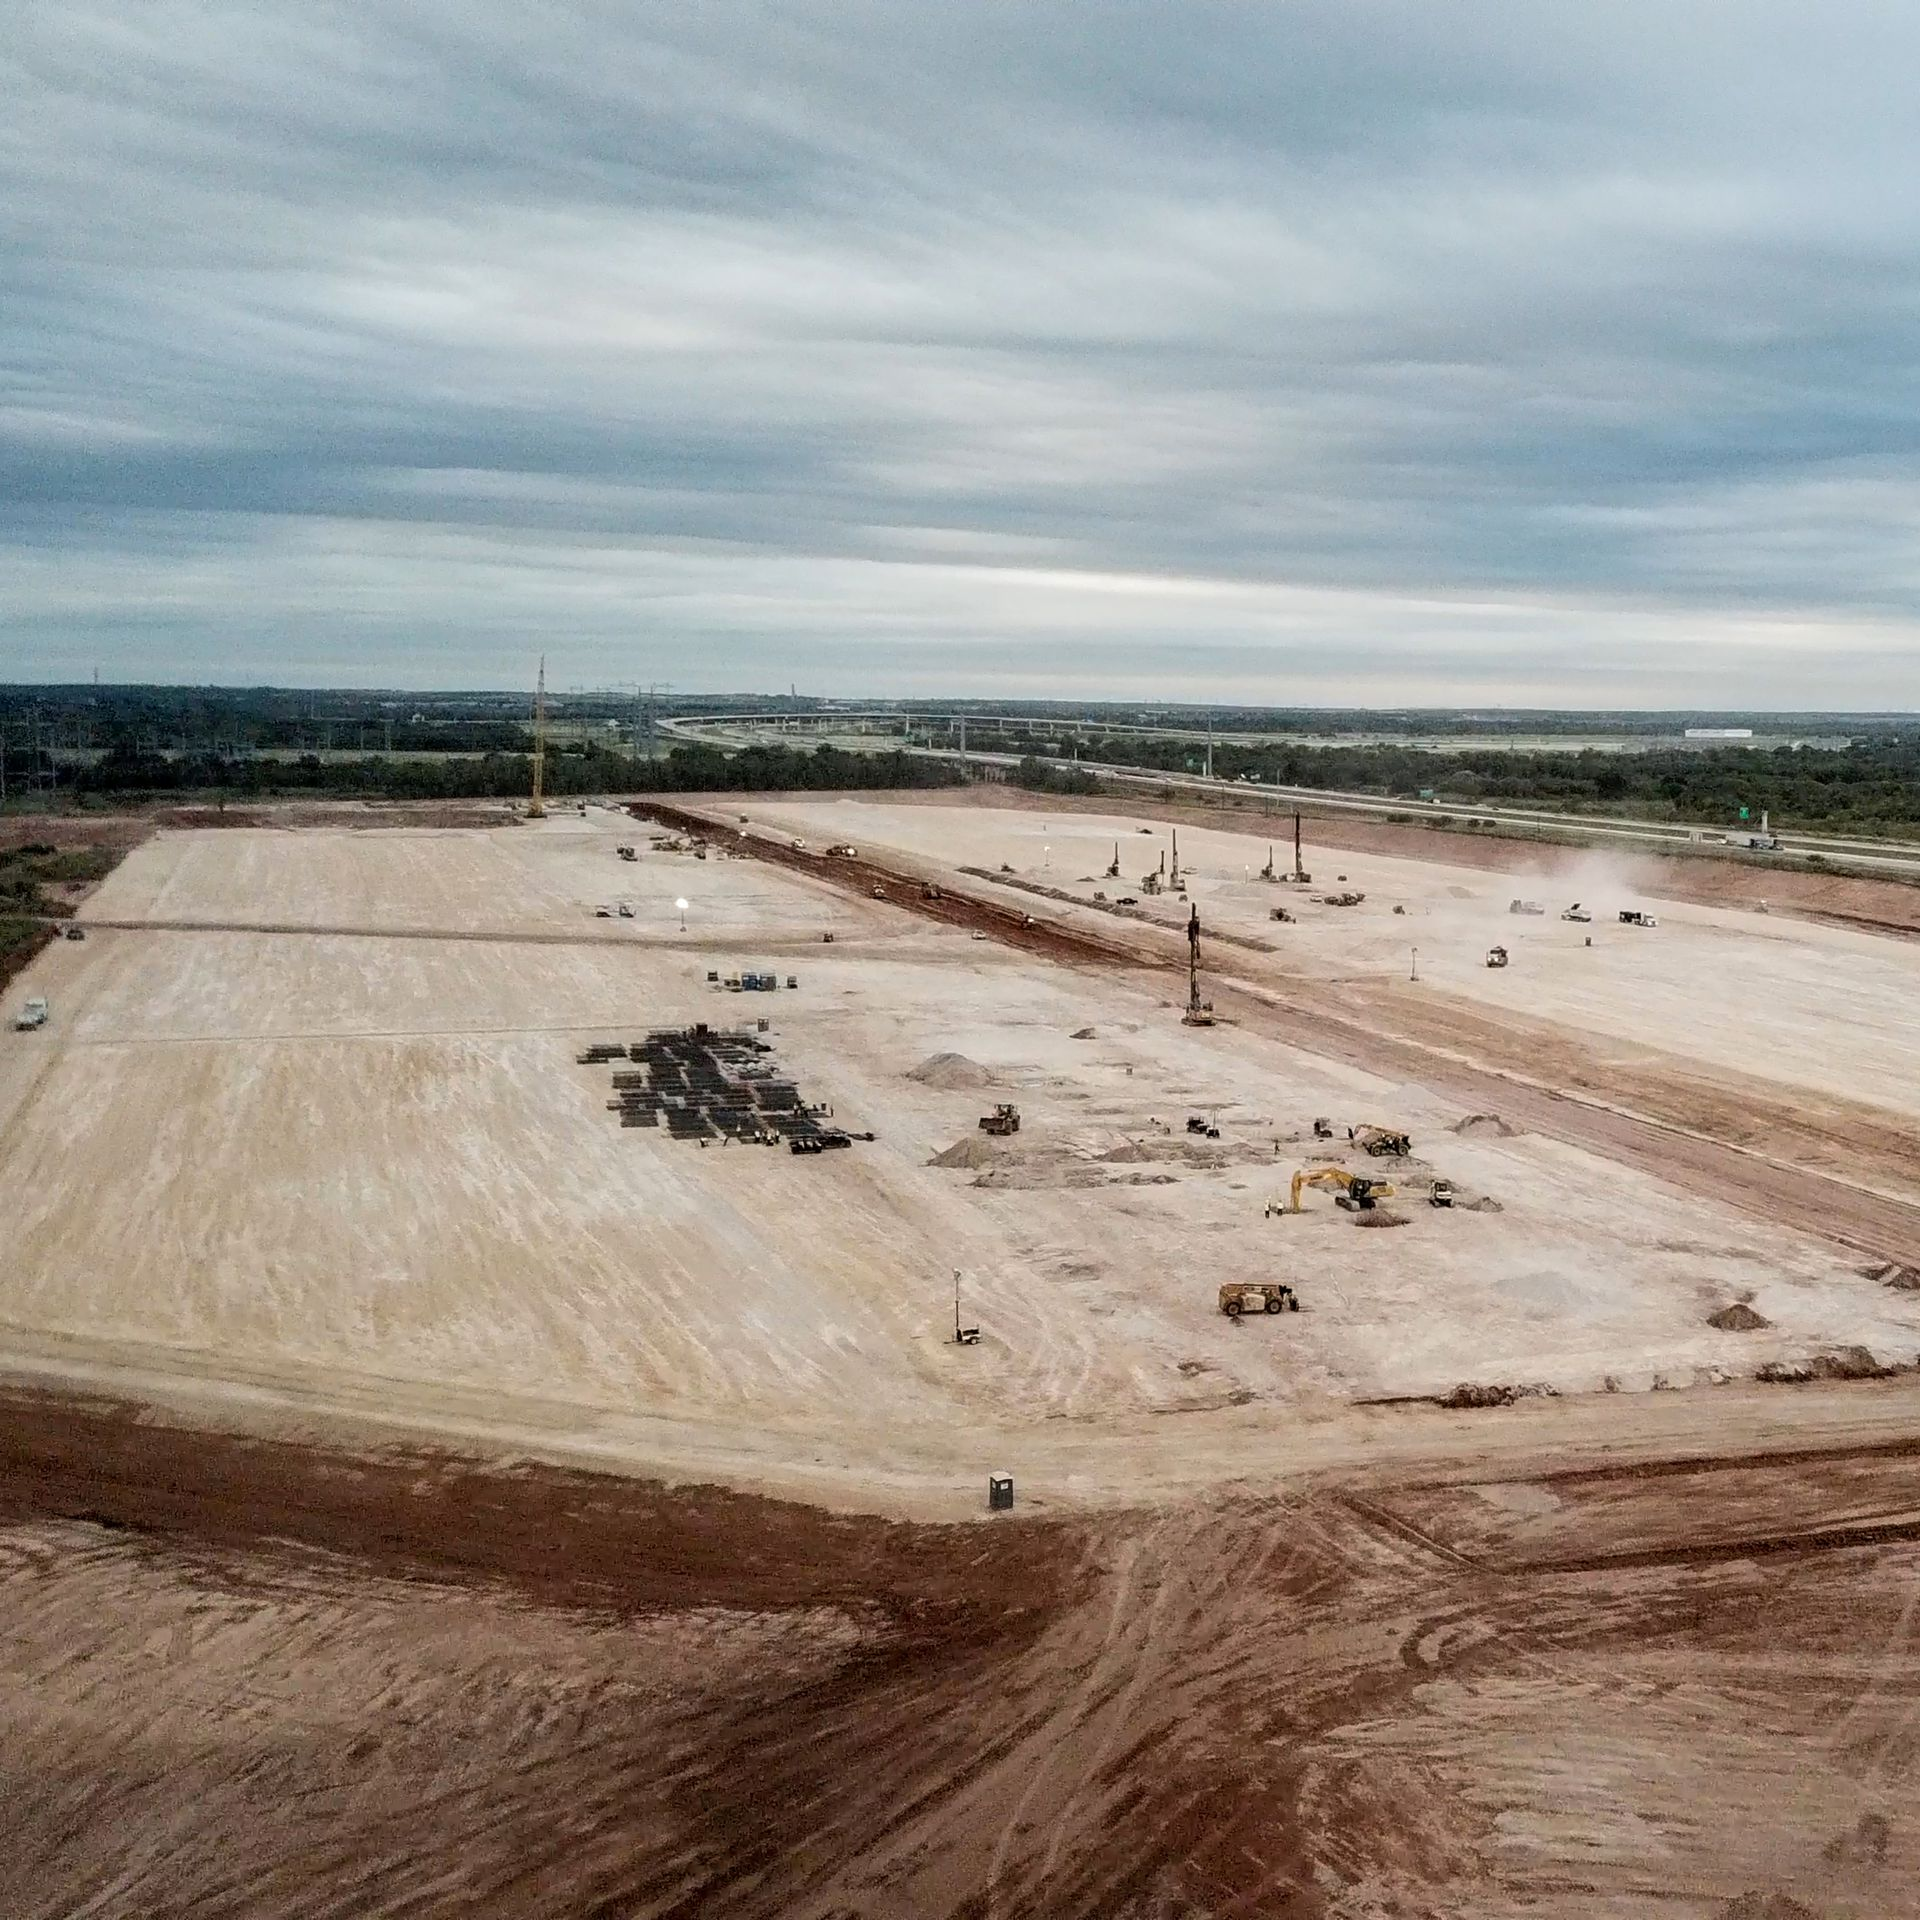 A photo of construction at the site of Tesla's proposed gigafactory in Austin.